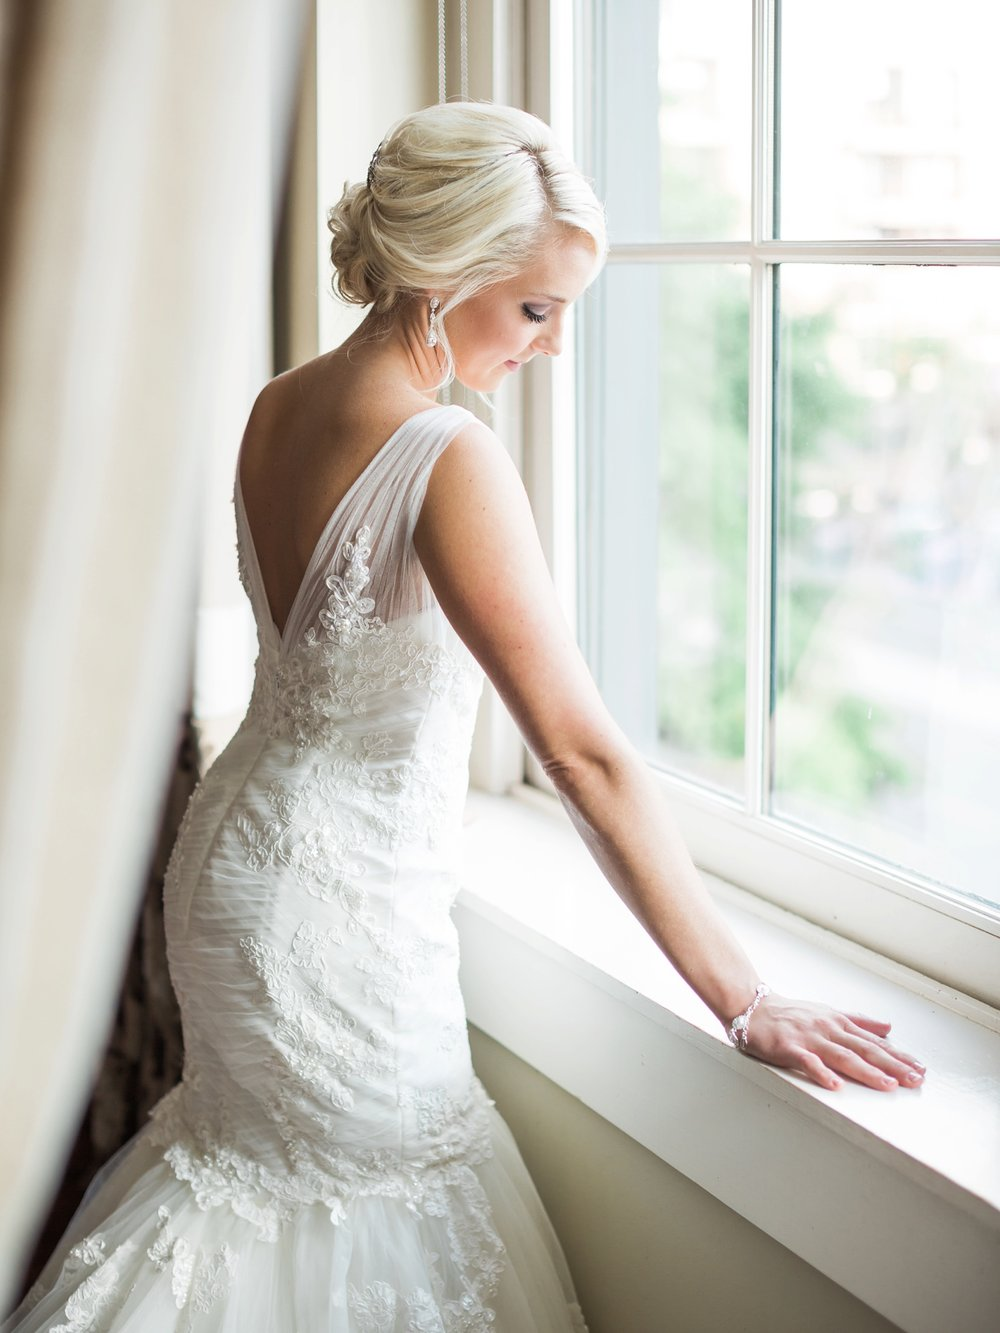 martha stewart wedding_window_beautiful bride_birmingham wedding photographer_montgomery alabama wedding photographer_destin rosemary alys beach 30A florida luxury wedding photographer